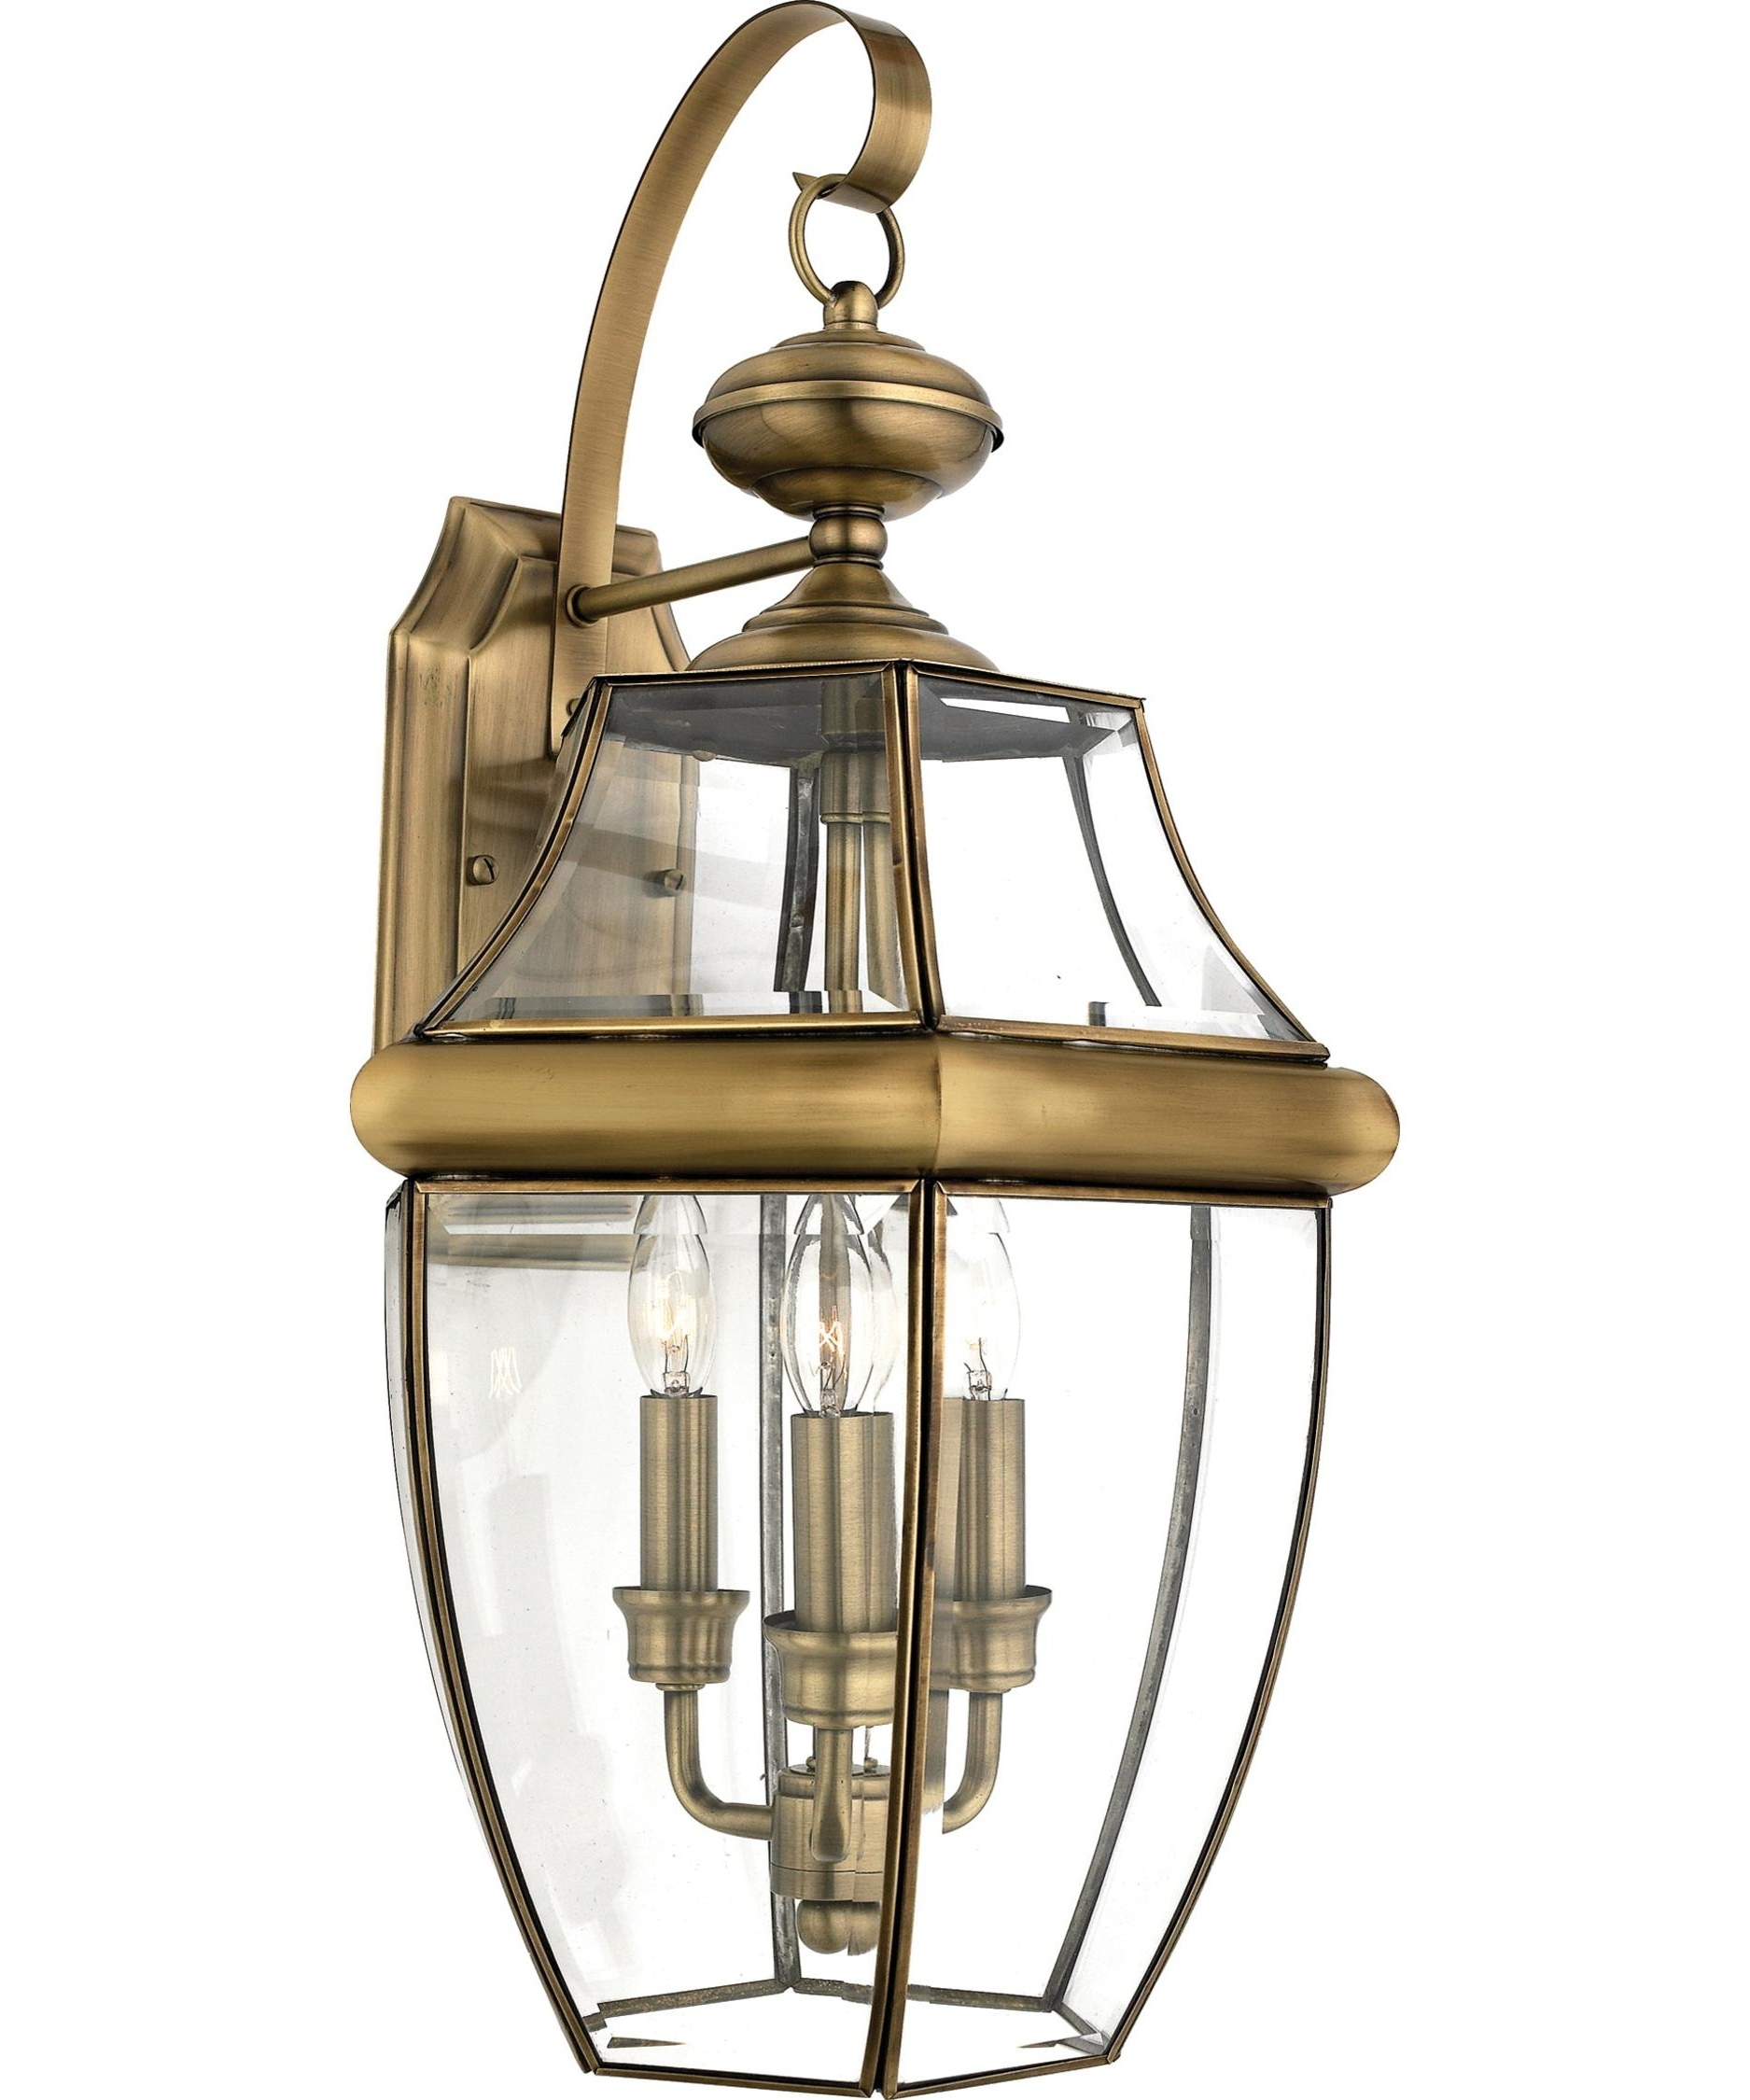 Recent Quoizel Ny8318 Newbury 13 Inch Wide 3 Light Outdoor Wall Light For Antique Outdoor Wall Lighting (Gallery 16 of 20)